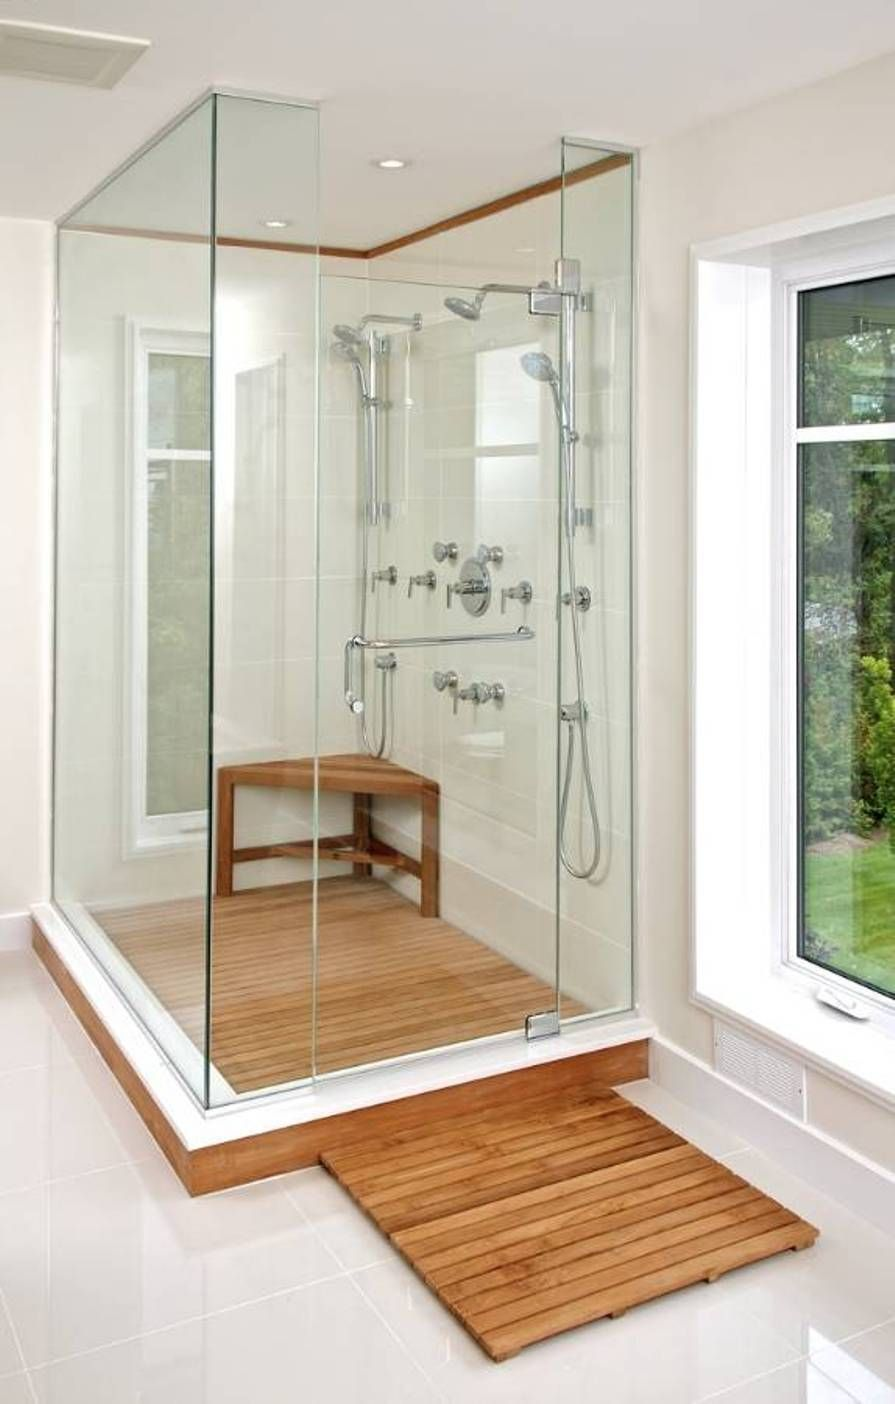 Bathroom Elegant Teak Shower Bench Walk In Shower With Corner